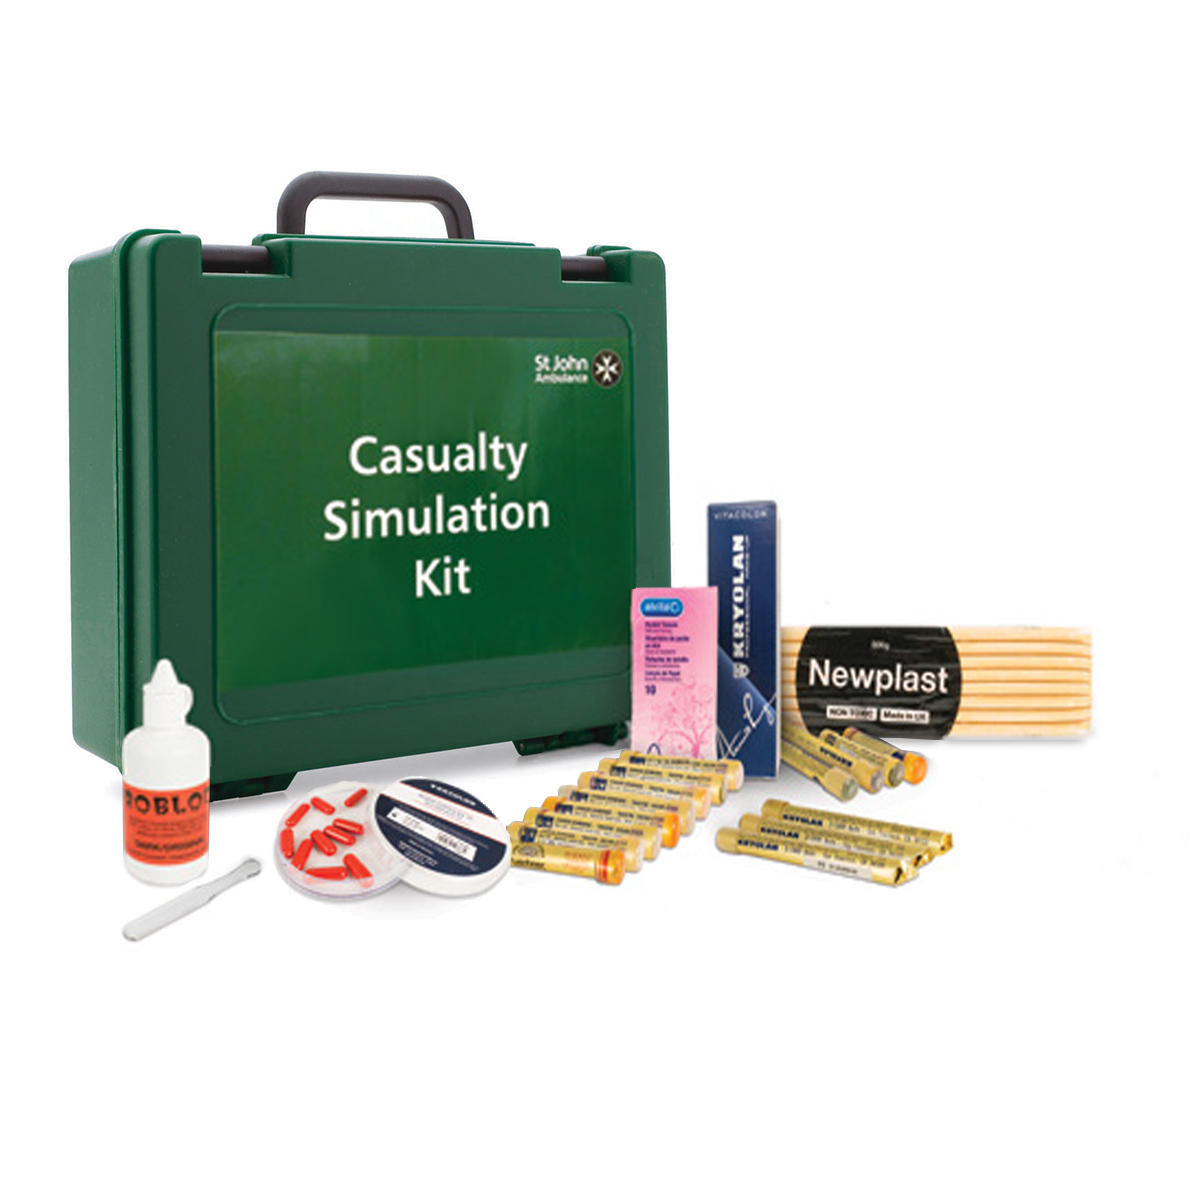 Large Casualty Simulation Kit